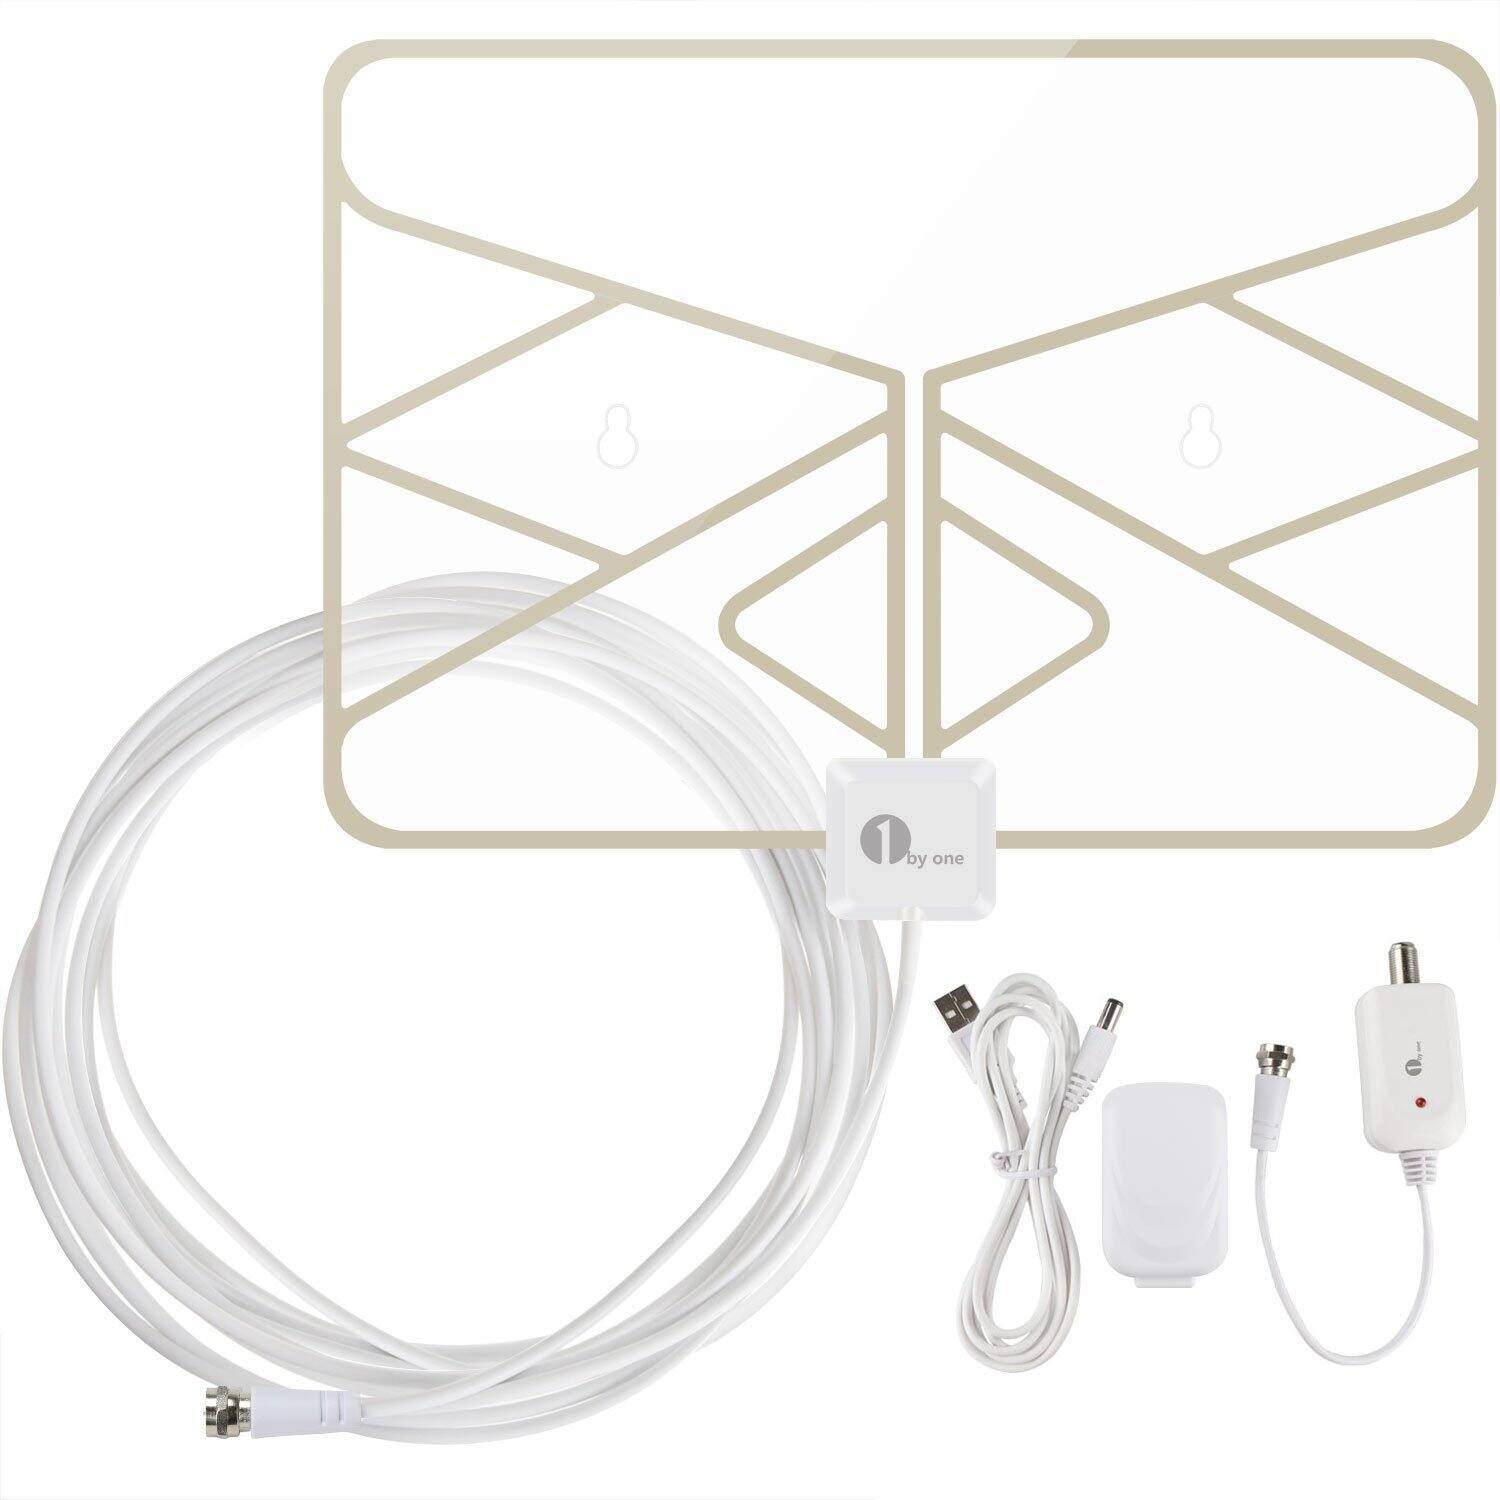 1byone Window Antenna 50 Miles Super Thin HDTV Antenna with 20ft Coaxial Cable - $16.99 AC @ Amazon